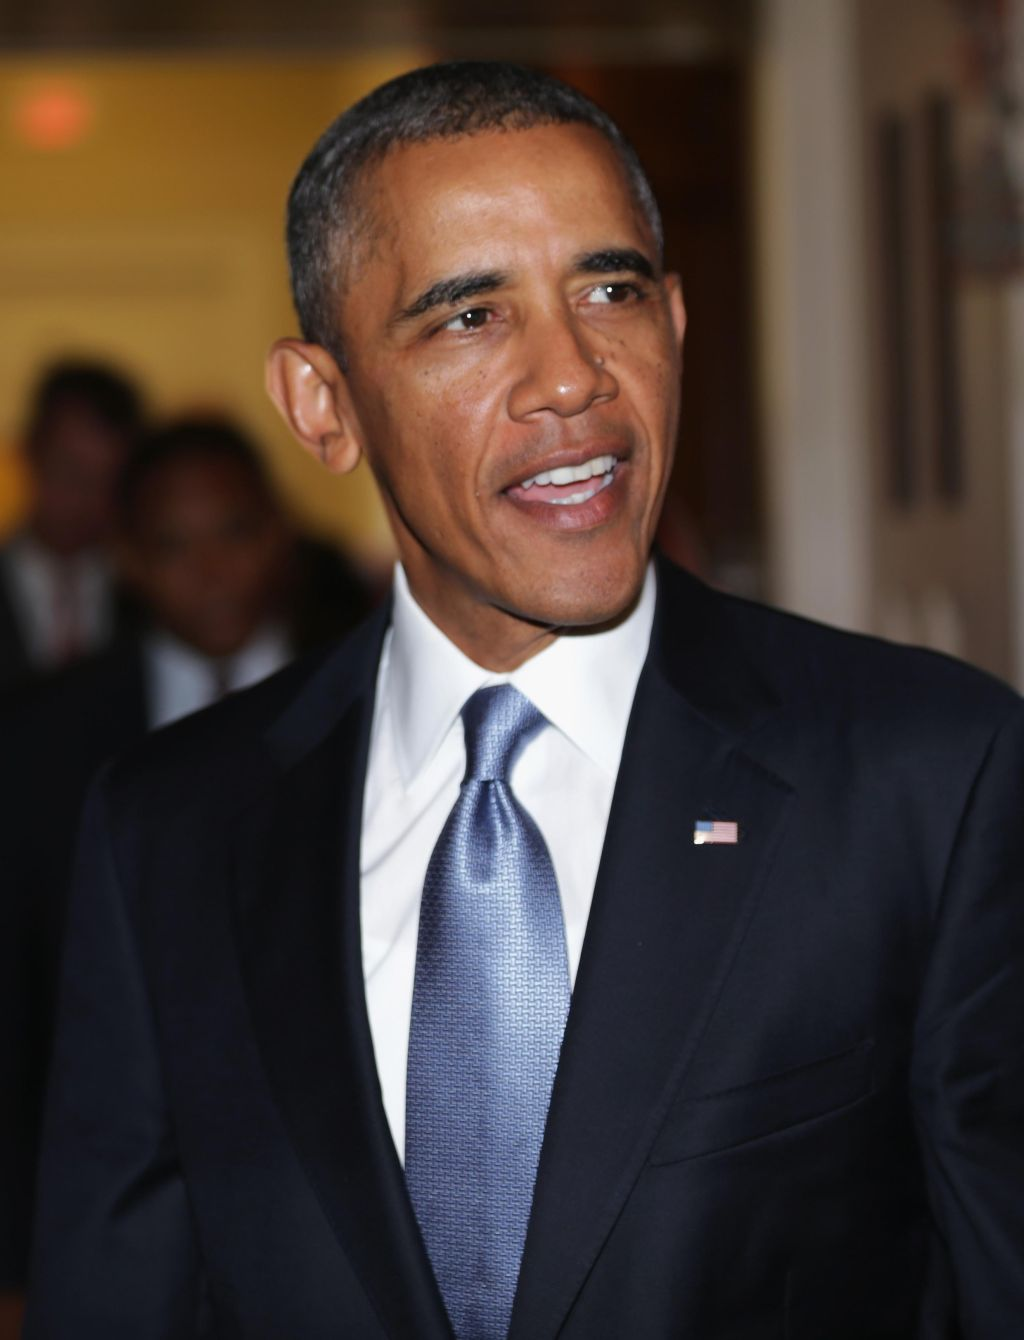 President Obama Meets With Senate Democrats And Republicans On Capitol Hill